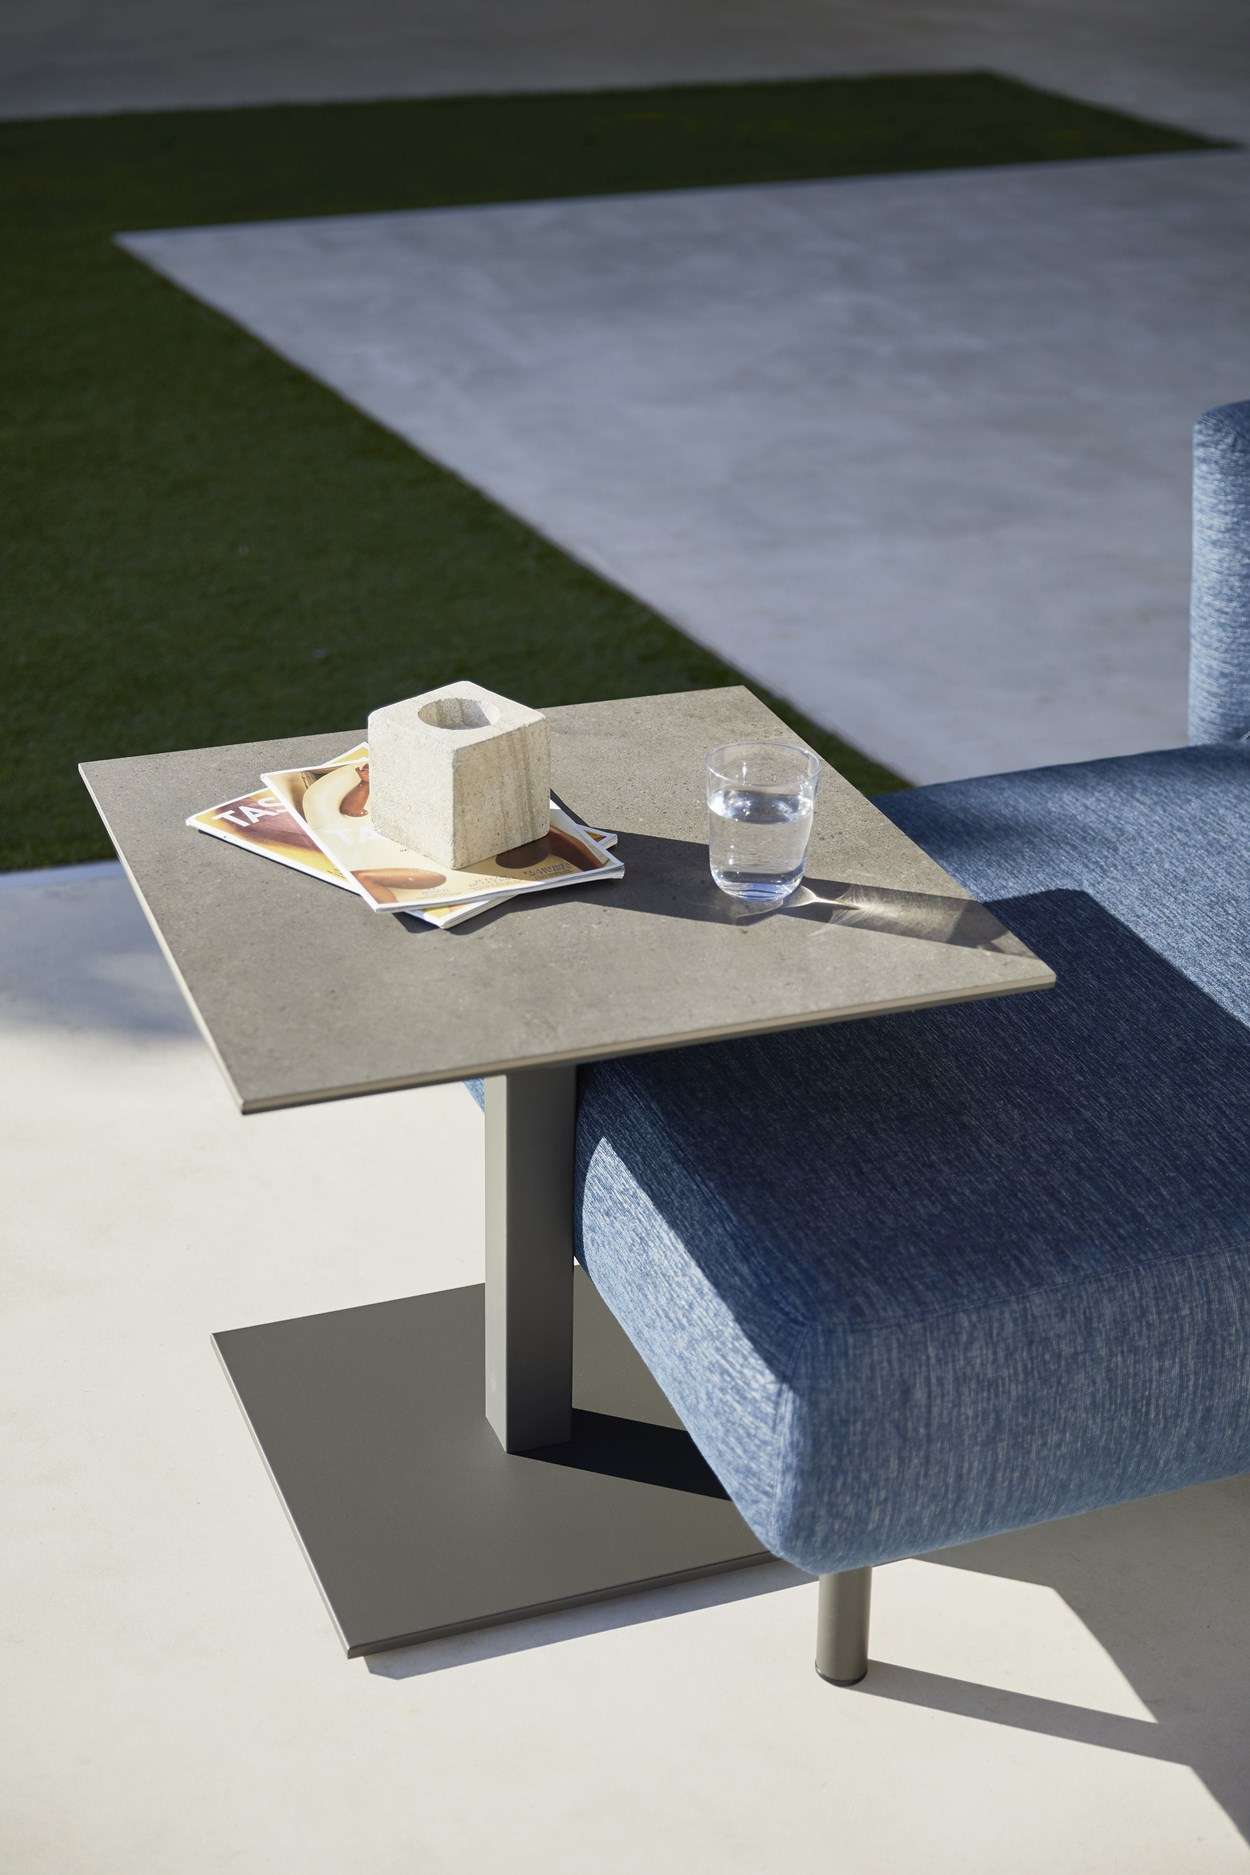 Musola-ICE-Coffee-Table004.jpg